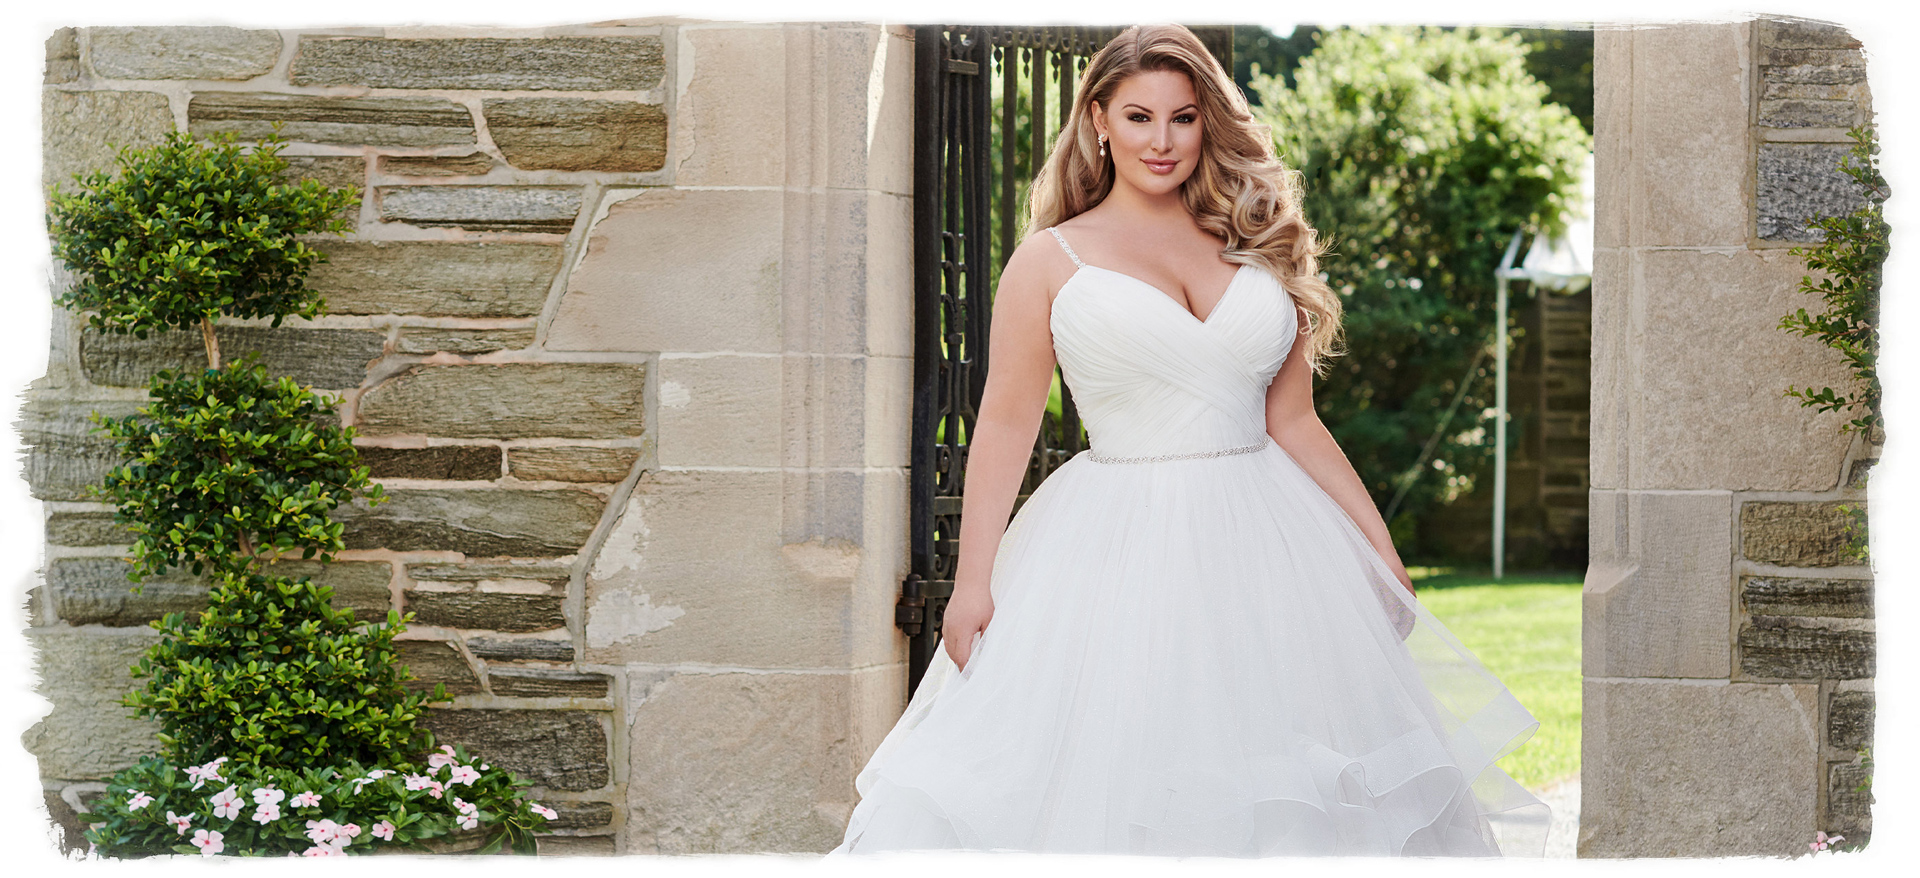 Blonde plus size bride in white dress